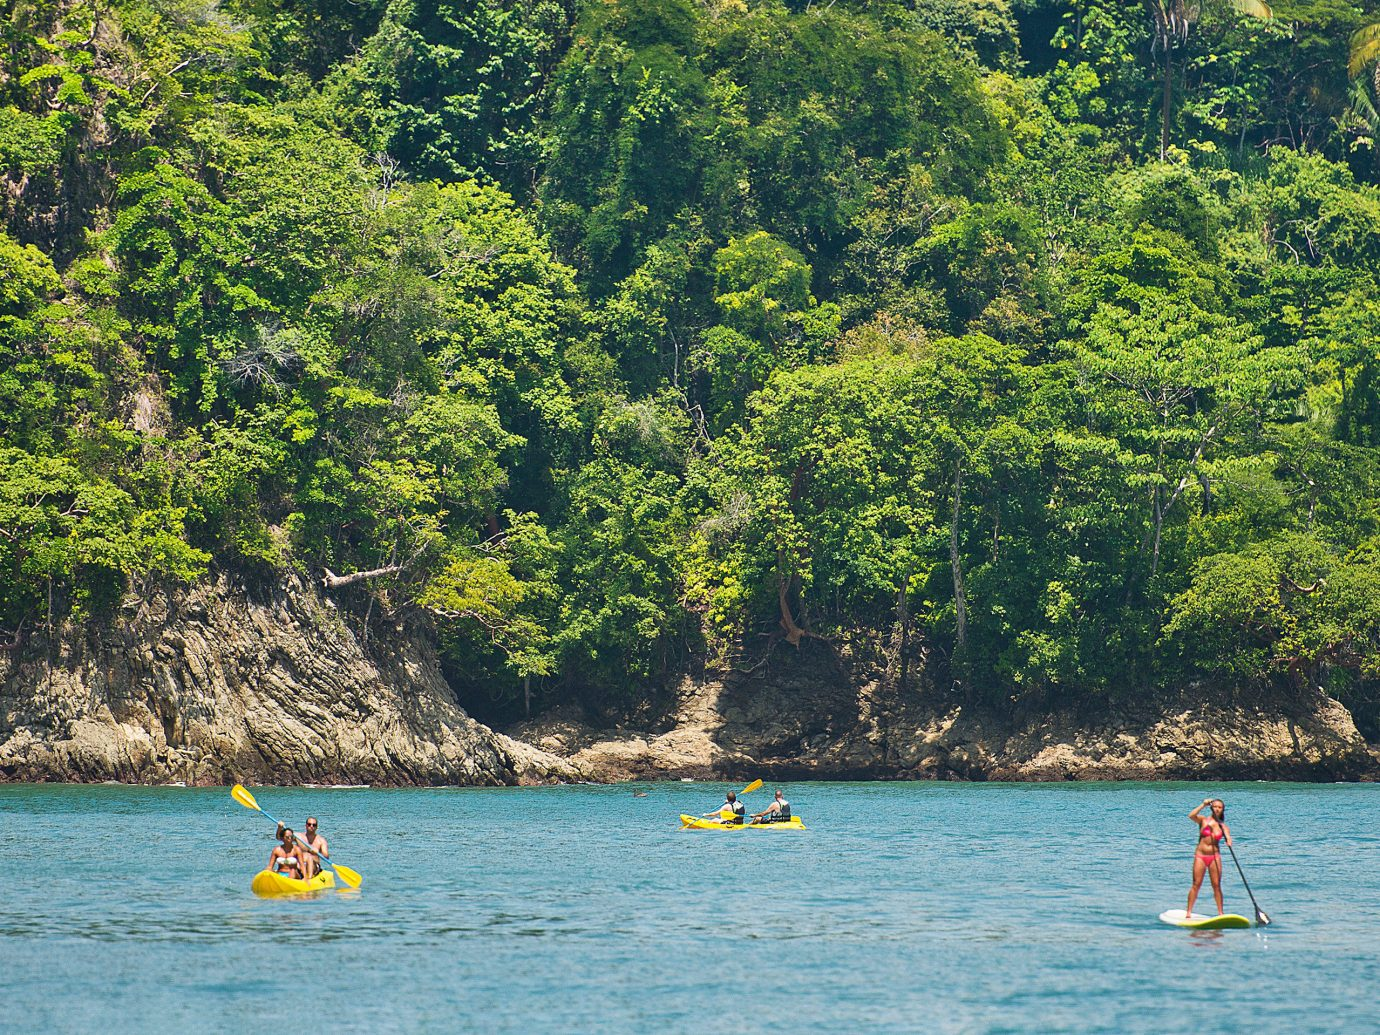 Adventure Beach Country Eco Jungle Modern Outdoor Activities Resort Romance Scenic views Sport Trip Ideas Waterfront tree water outdoor body of water Boat boating River vehicle watercraft Lake bay Sea kayak paddle surrounded swimming Raft